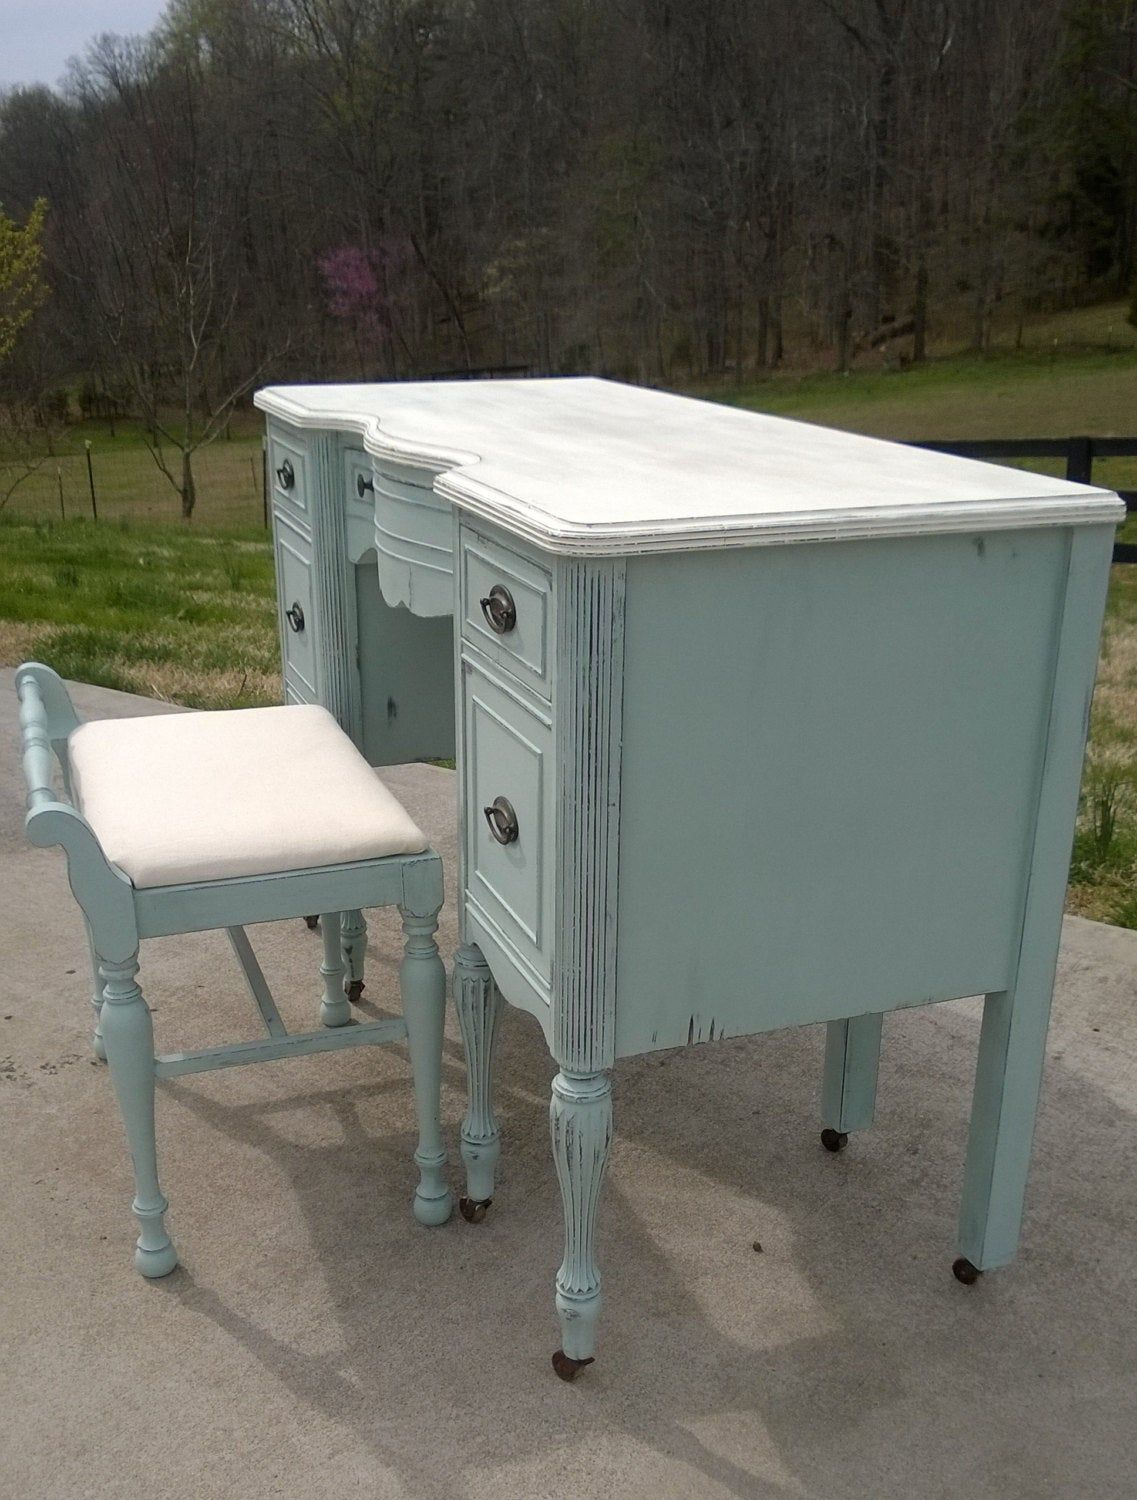 Sold Example Chalk Painted Vanity Desk In Annie Sloan Paint Shabby Chic Distressed Painted Vanity Annie Sloan Paints Vanity Desk